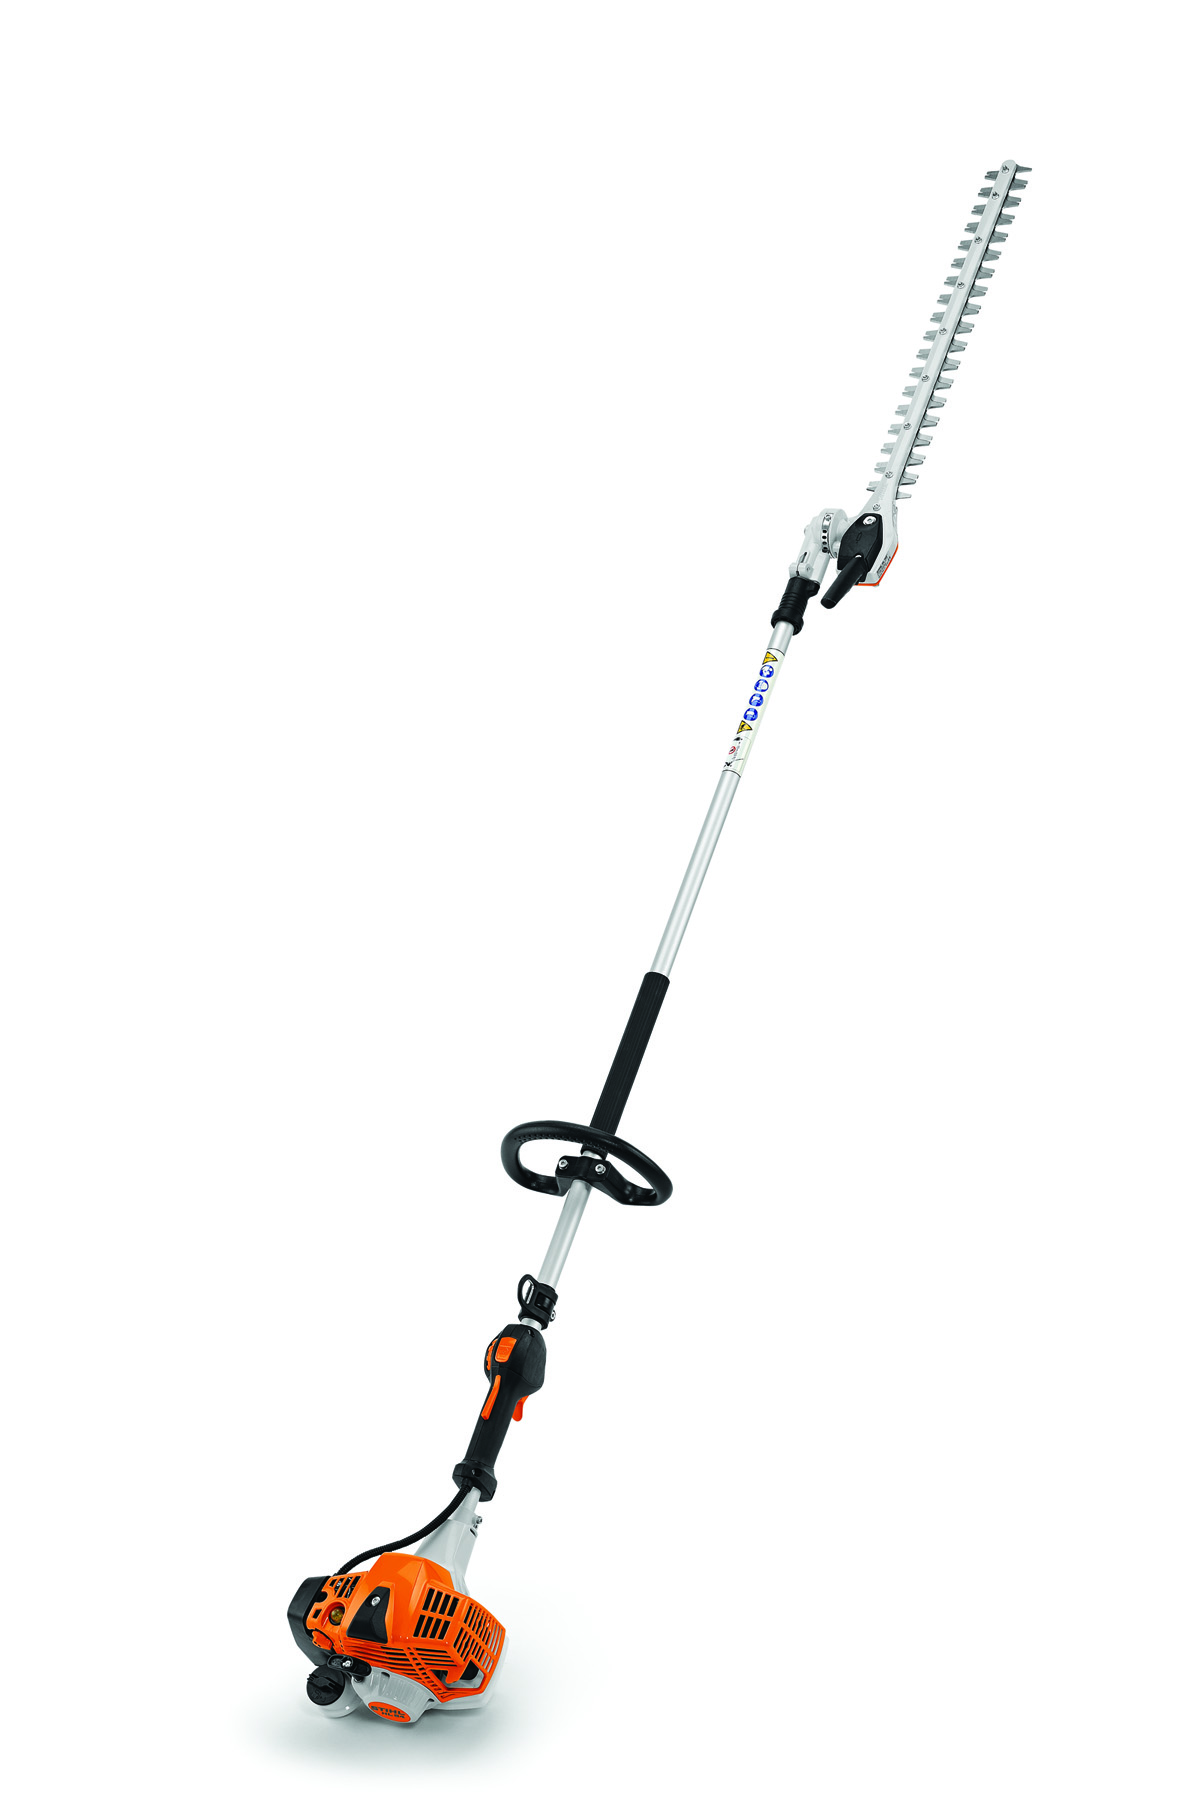 hedge stihl trimmer hl reach studio extended trimmers balanced better easy